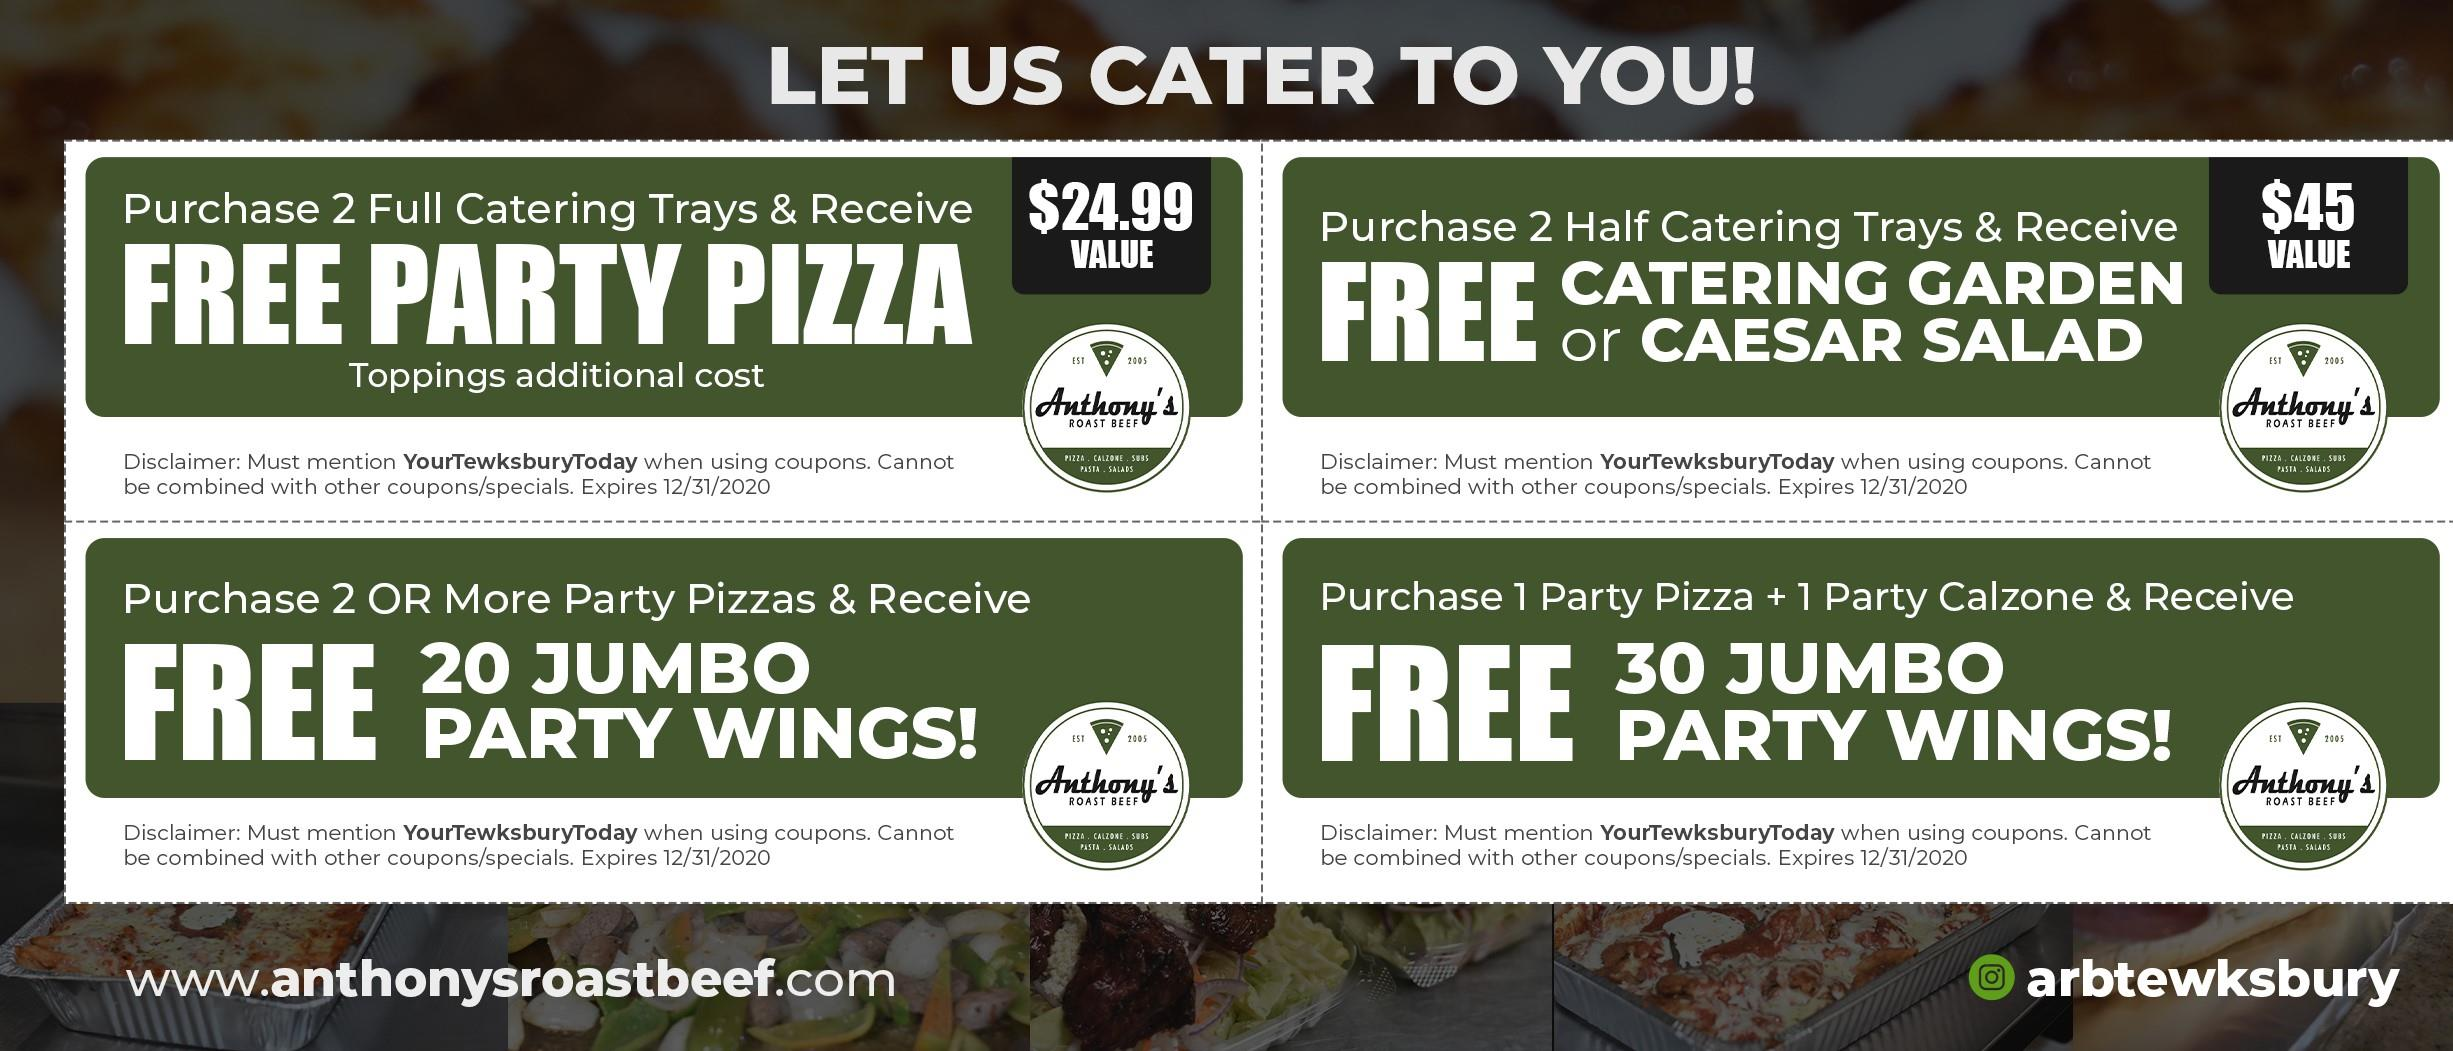 purcahse 2 full catering trays and receive free party pizza. Toppings additonal cos $24.99 value. Purchase 2 or more party pizzas and receive free 20 jumbo party wings. Purchase 2 half catering trays and receive a free catering garden salad or caesar salad. Purchase 1 party pizza and 1 party calzone and receive free 30 jumbo party wings